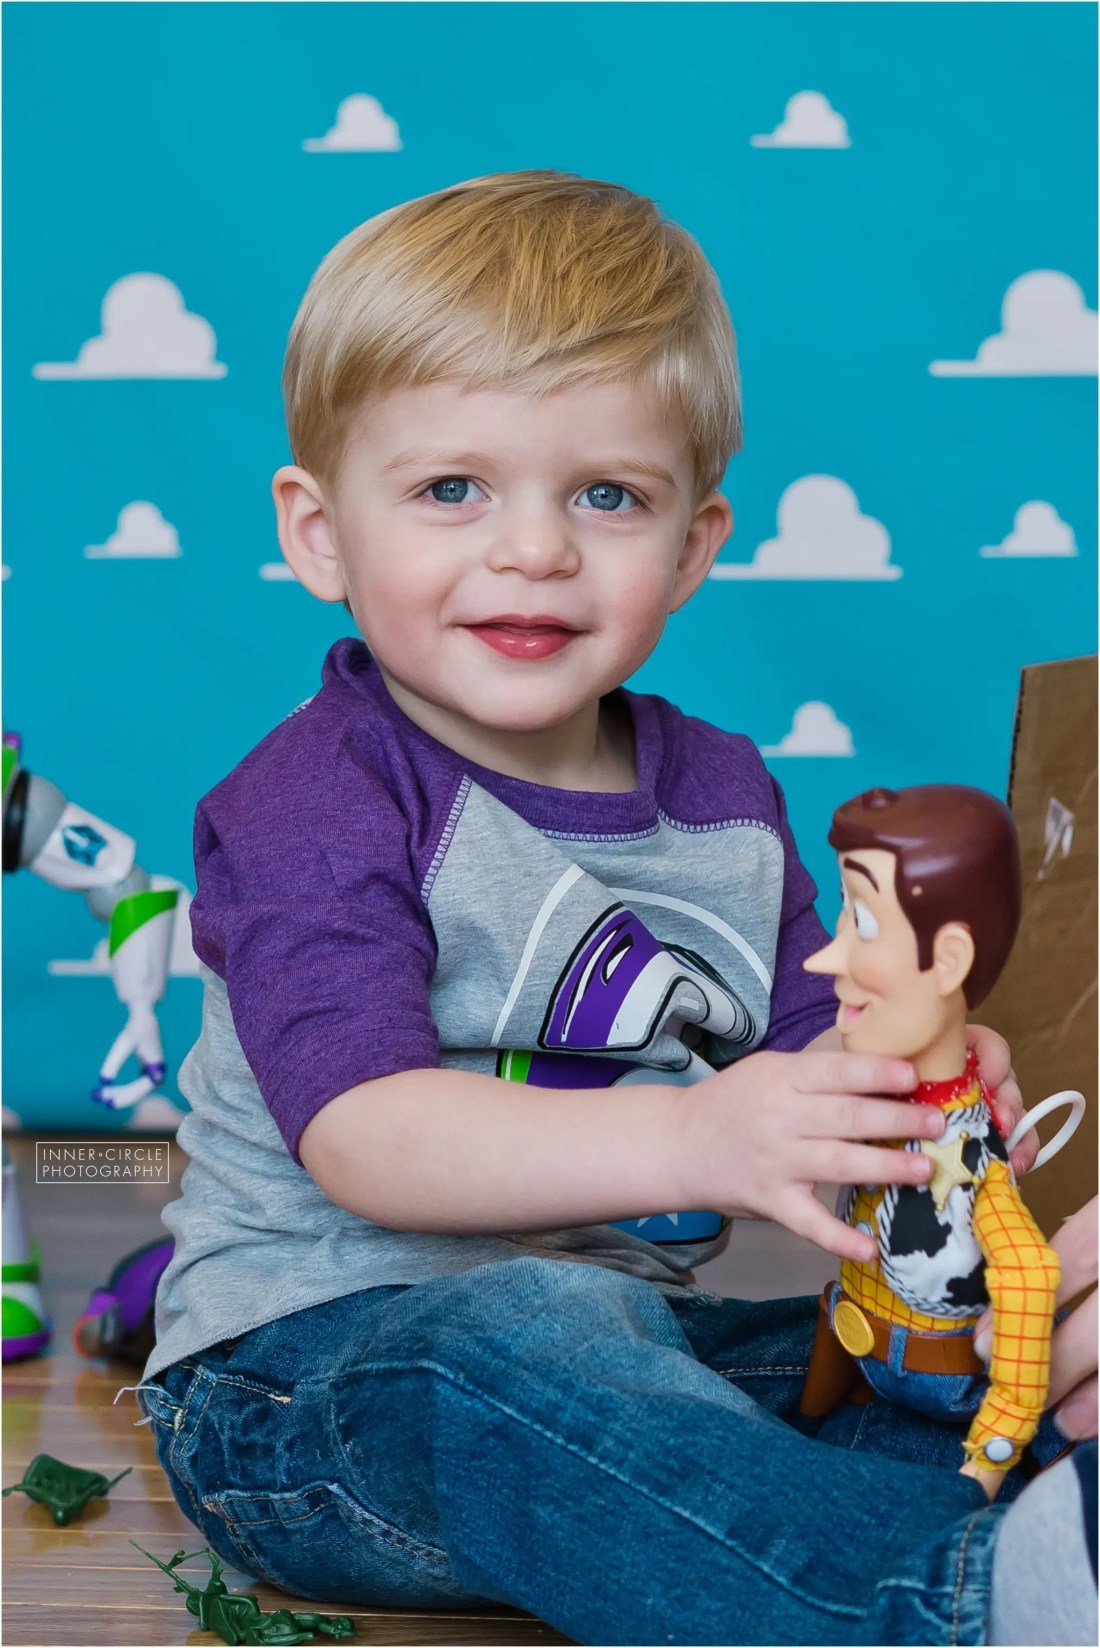 Ethan2019_SESS_InnerCirclePhoto_008 Ethan 2 Years Old :: 2019